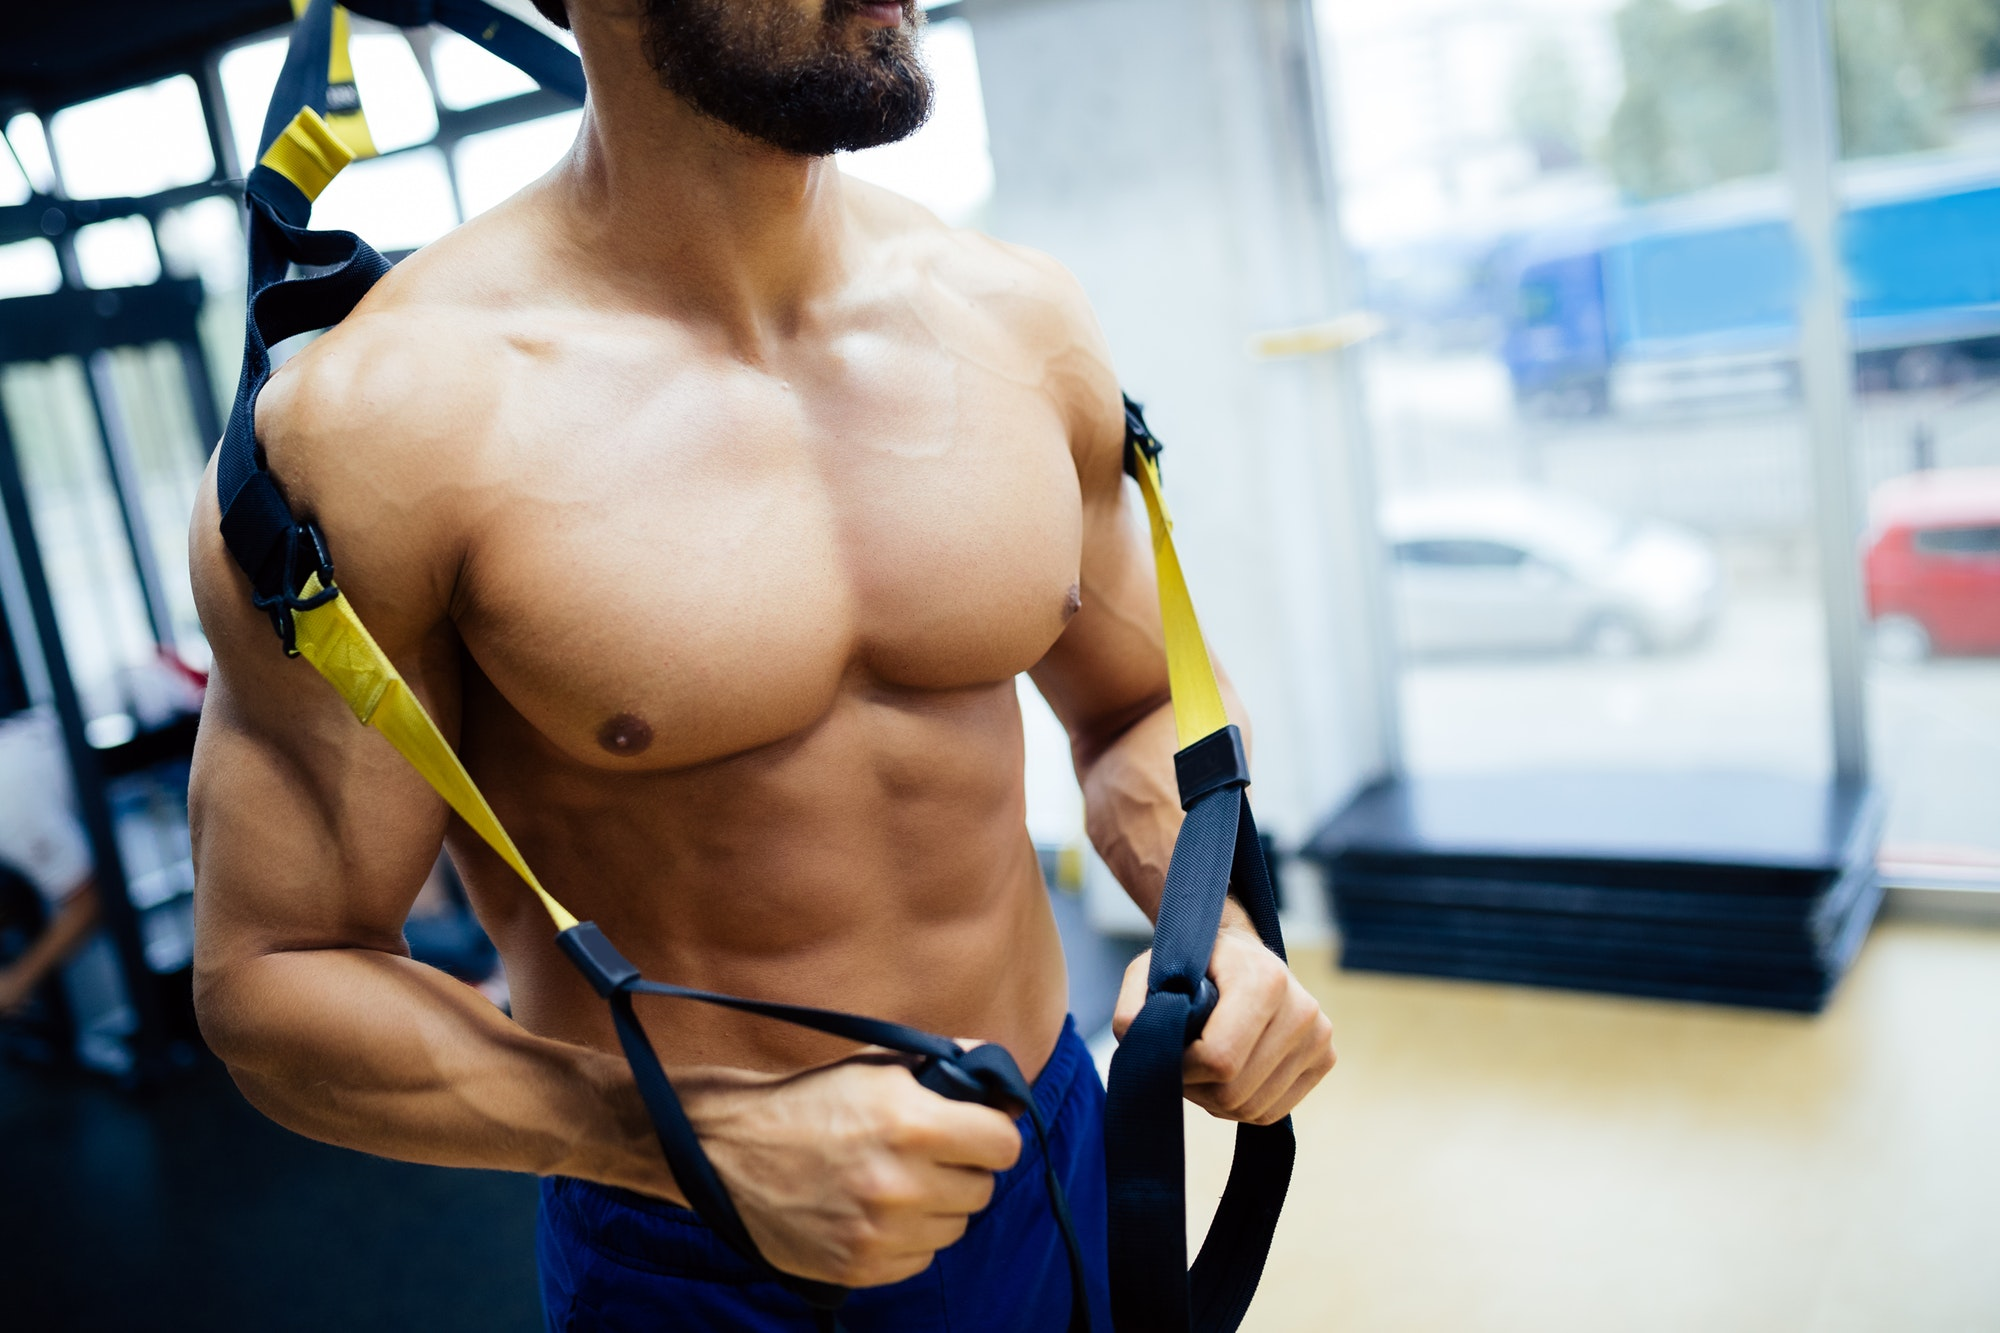 Caucasian man exercising with suspension training trx